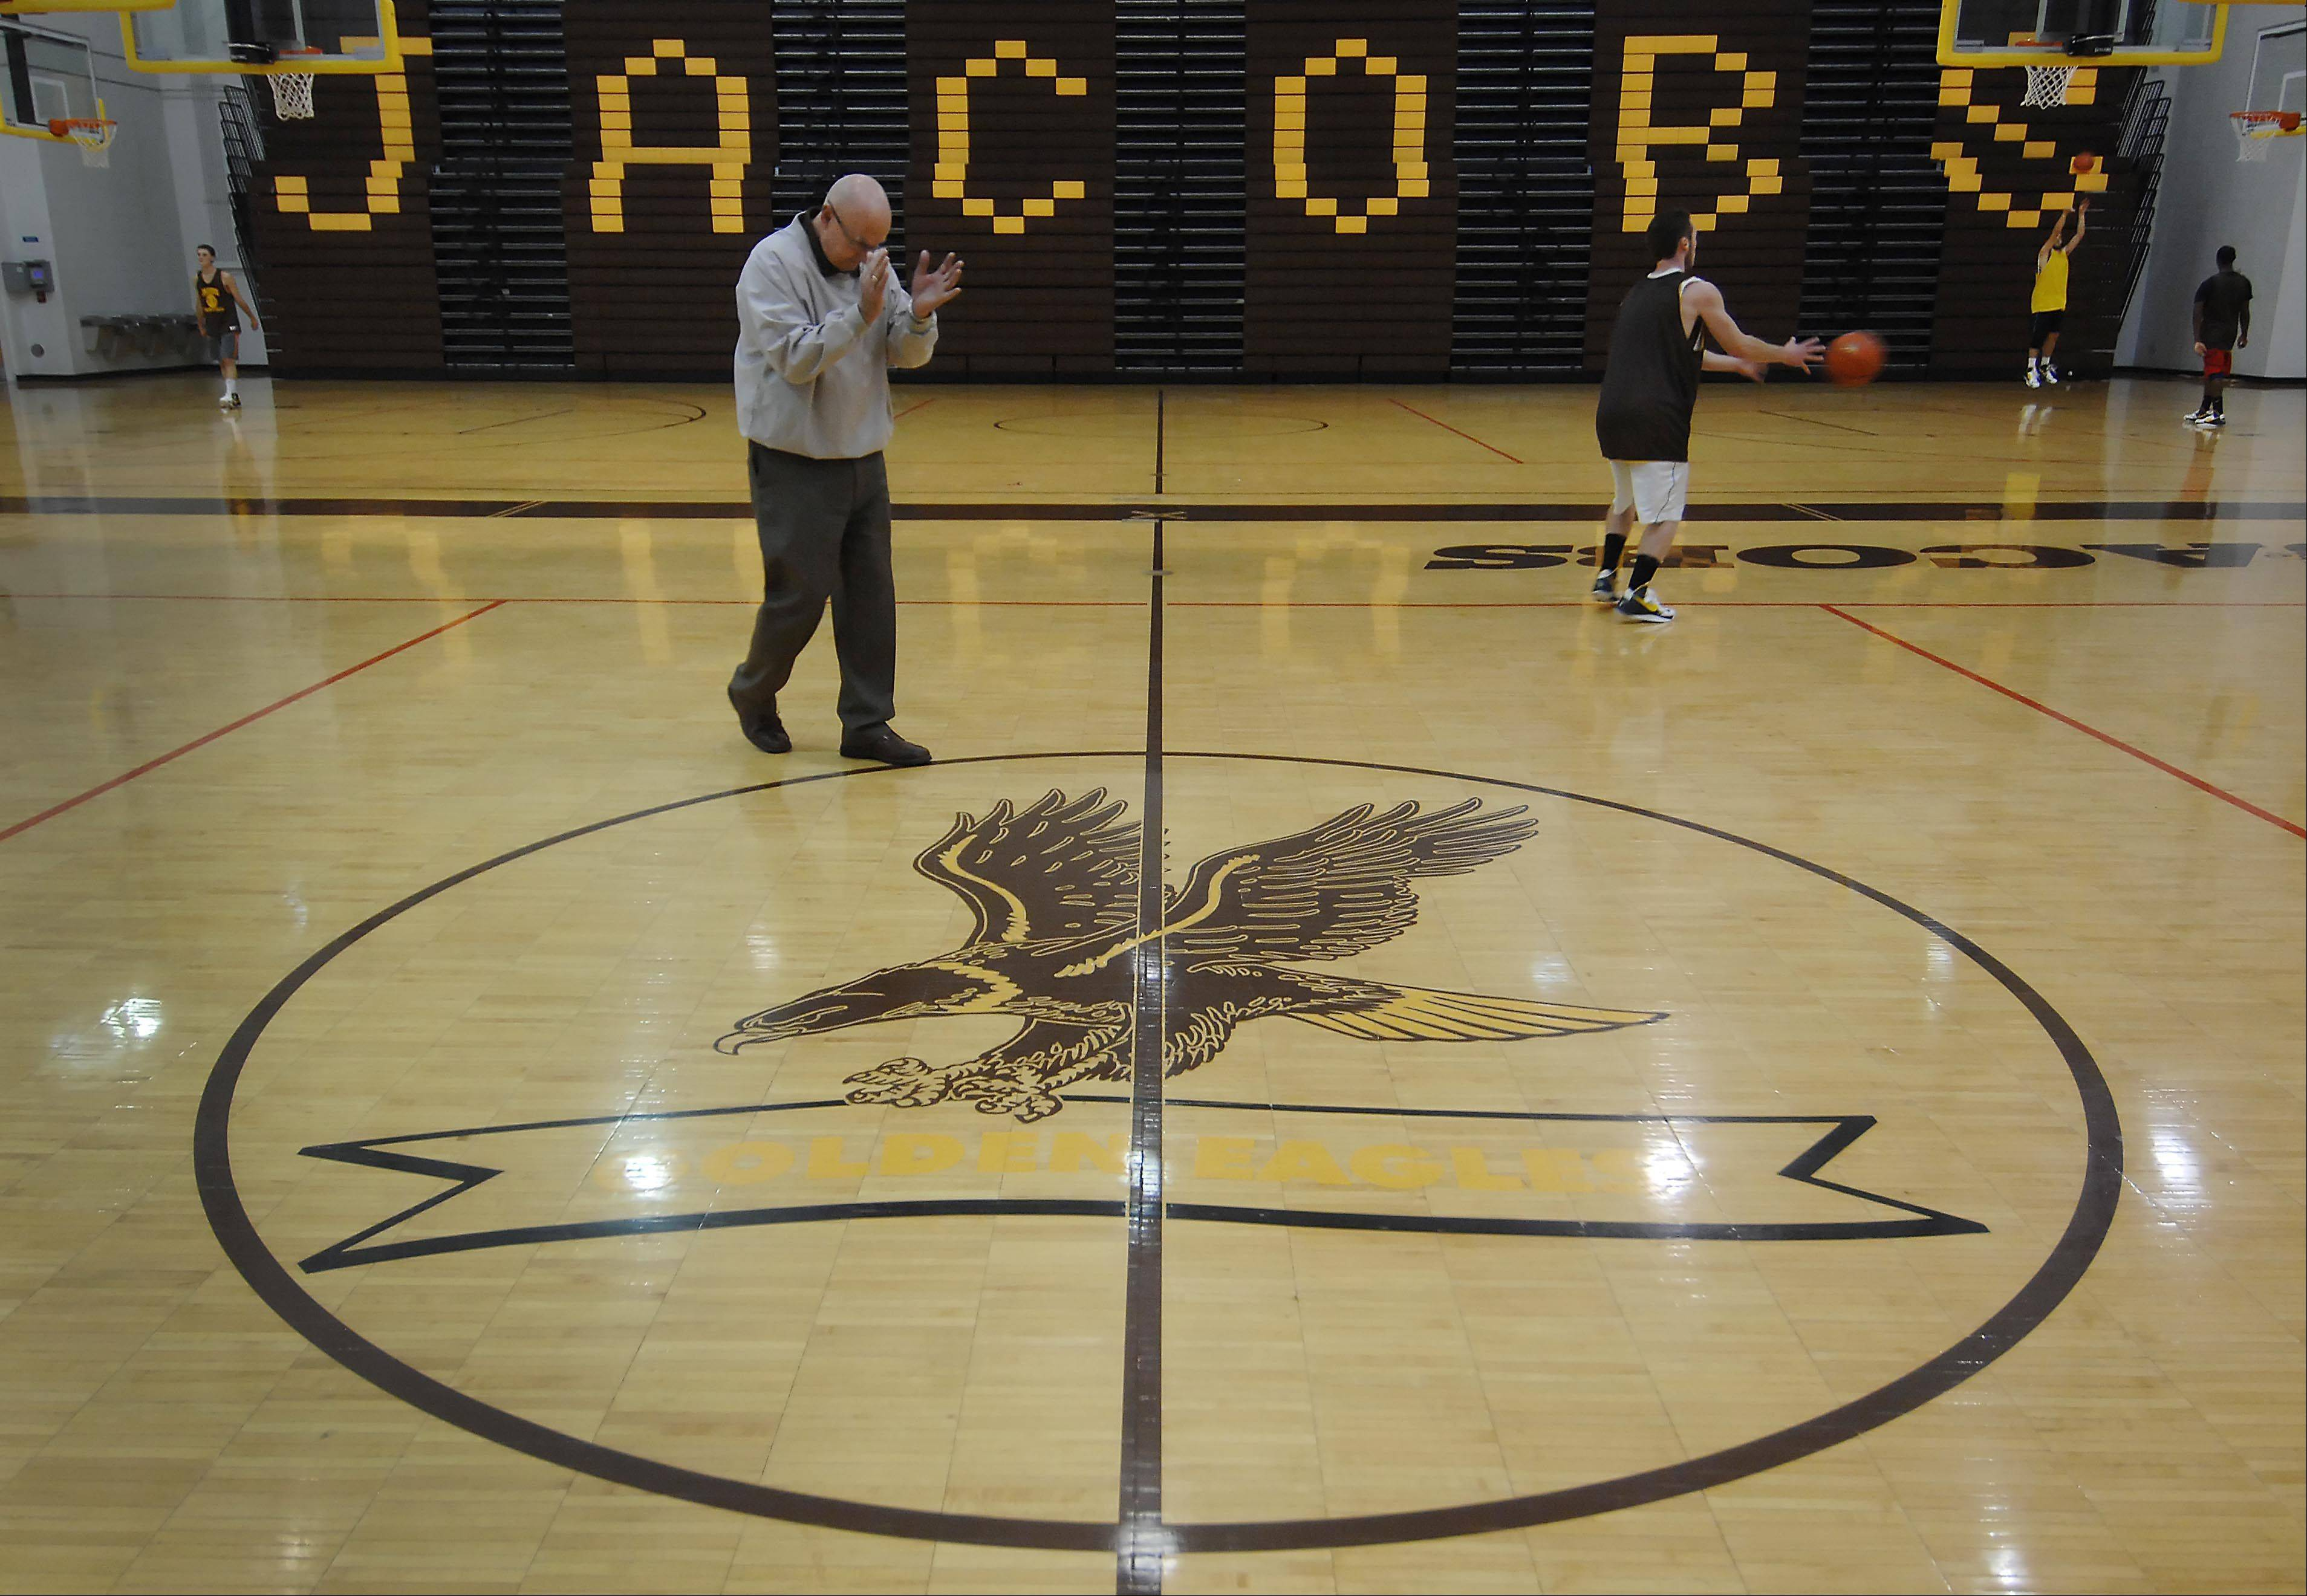 Coach Jim Hinkle has directed the Jacobs High School boys basketball team since 1996.